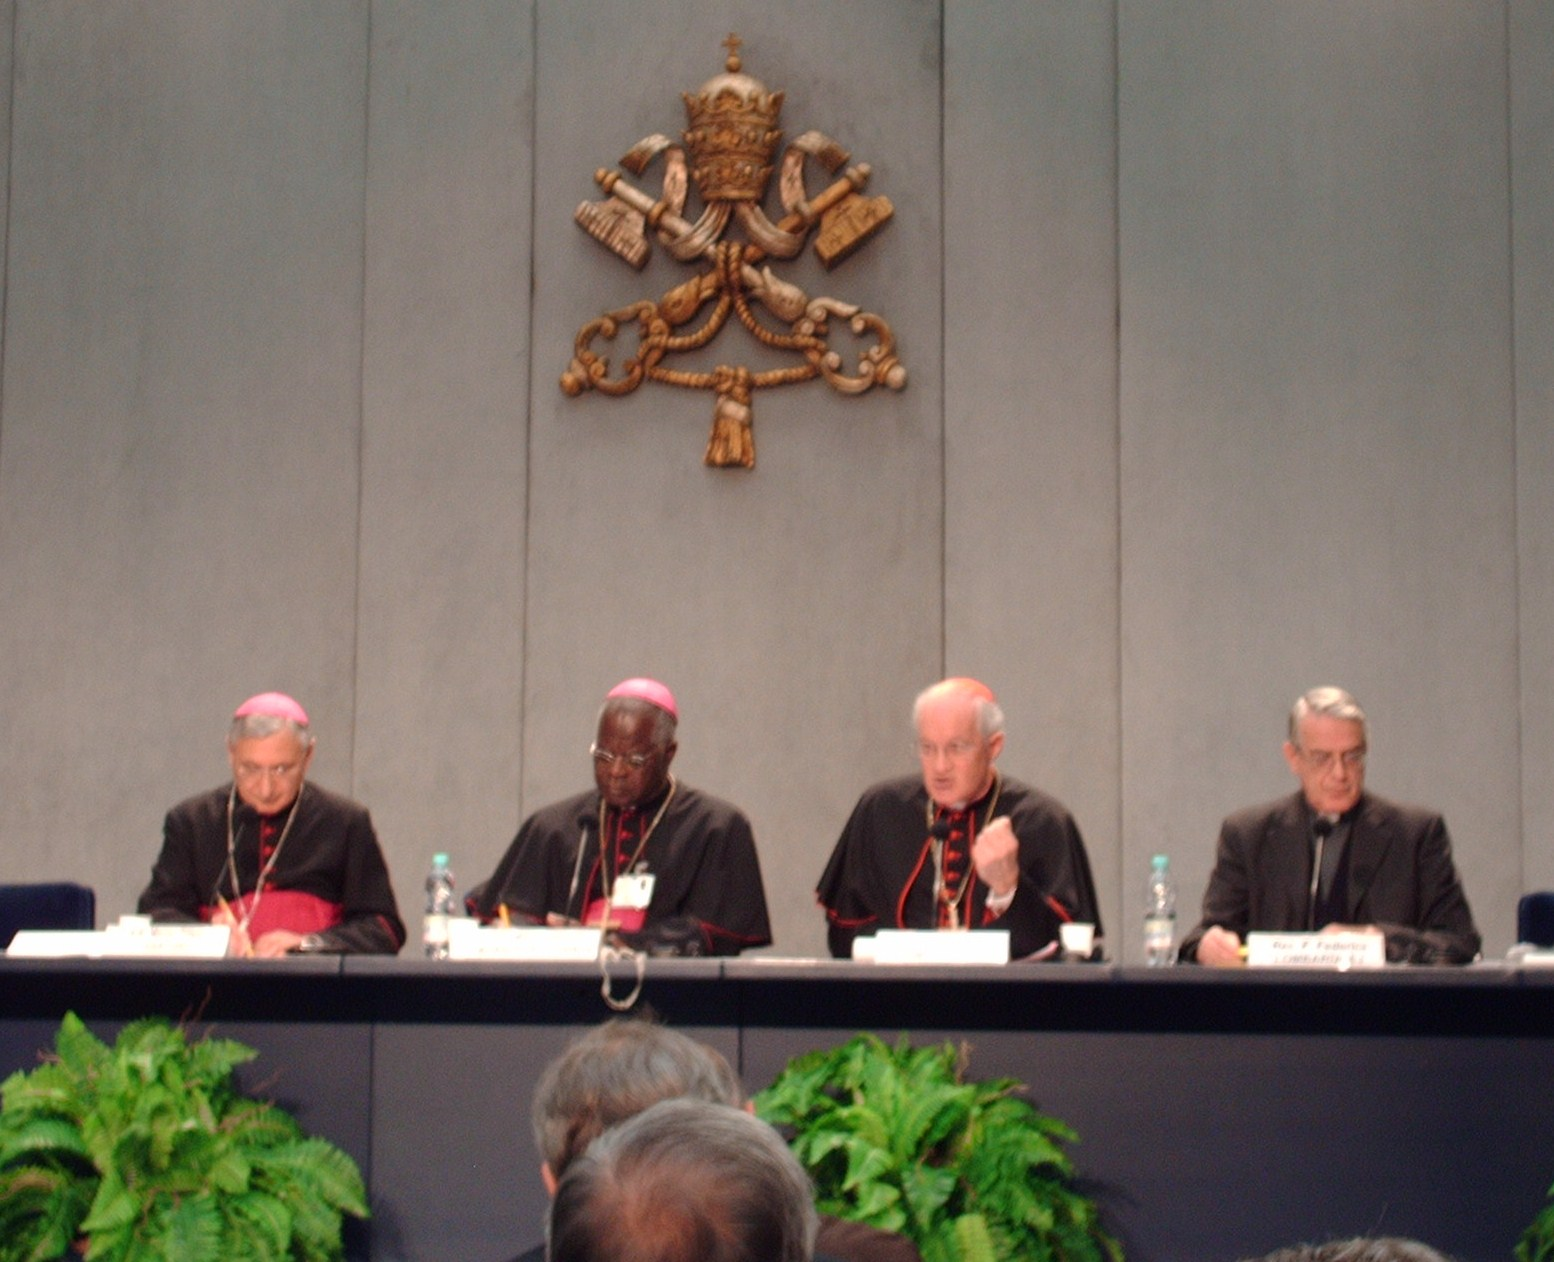 Vatican press conference: Bishop Filippo Santoro, Archbishop Laurent Monsengwo Pasinya, Cardinal Marc Ouellet, P.S.S., and Fr. Federico Lombardi, S.I.